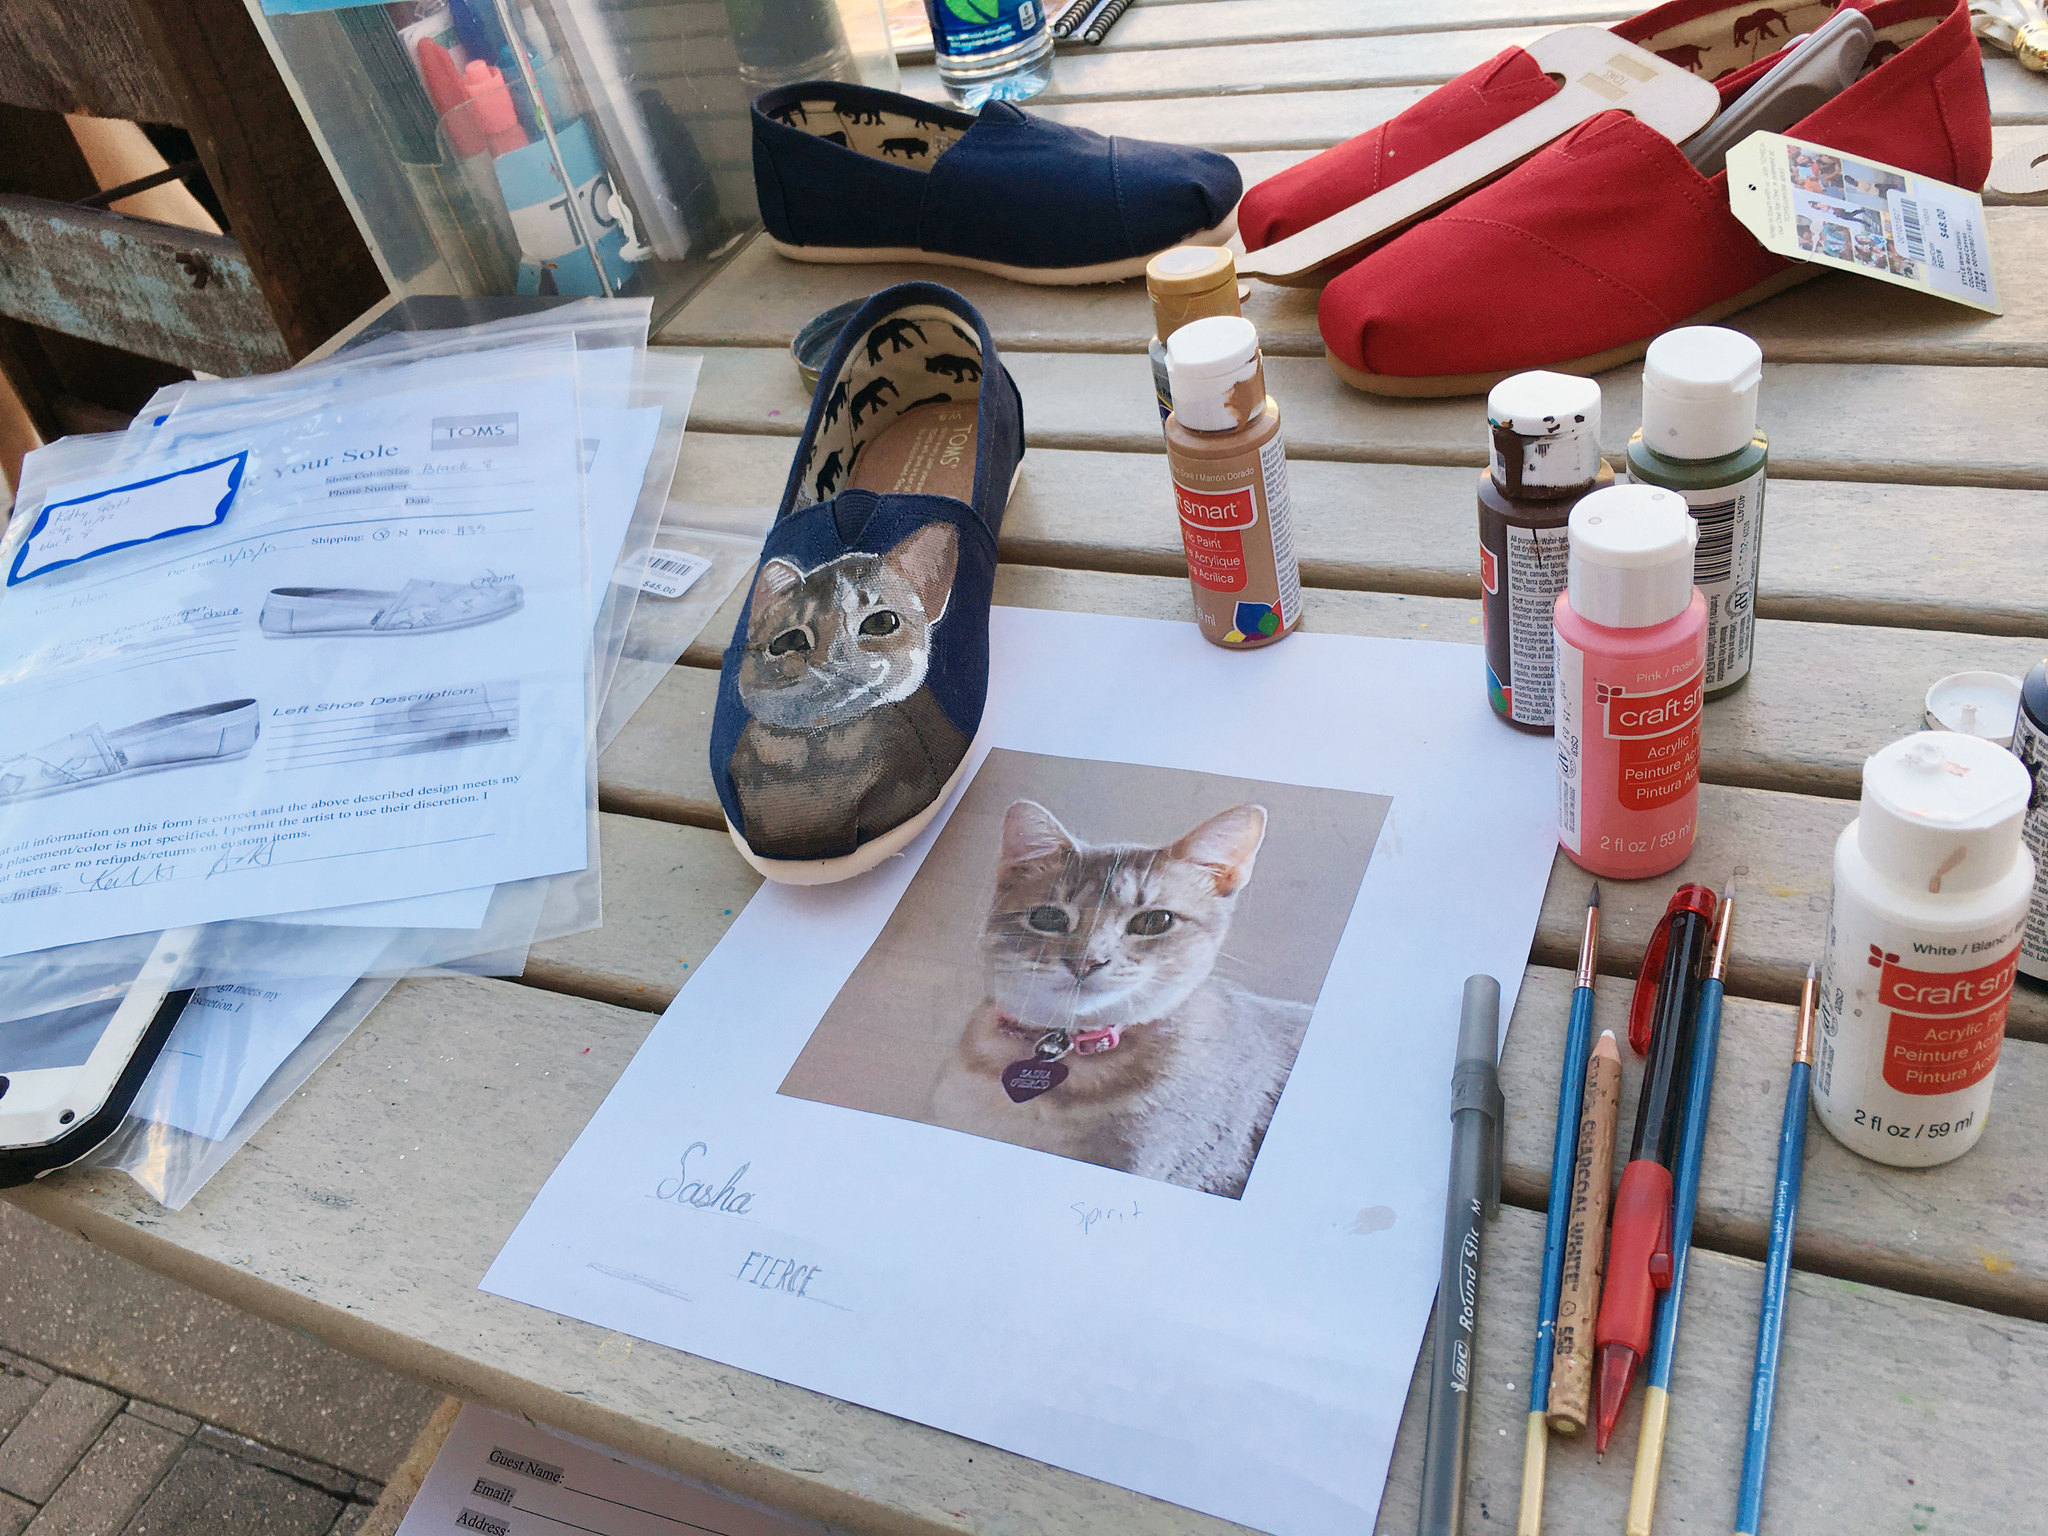 personalized toms shoes available about disney springs orlando sentinel